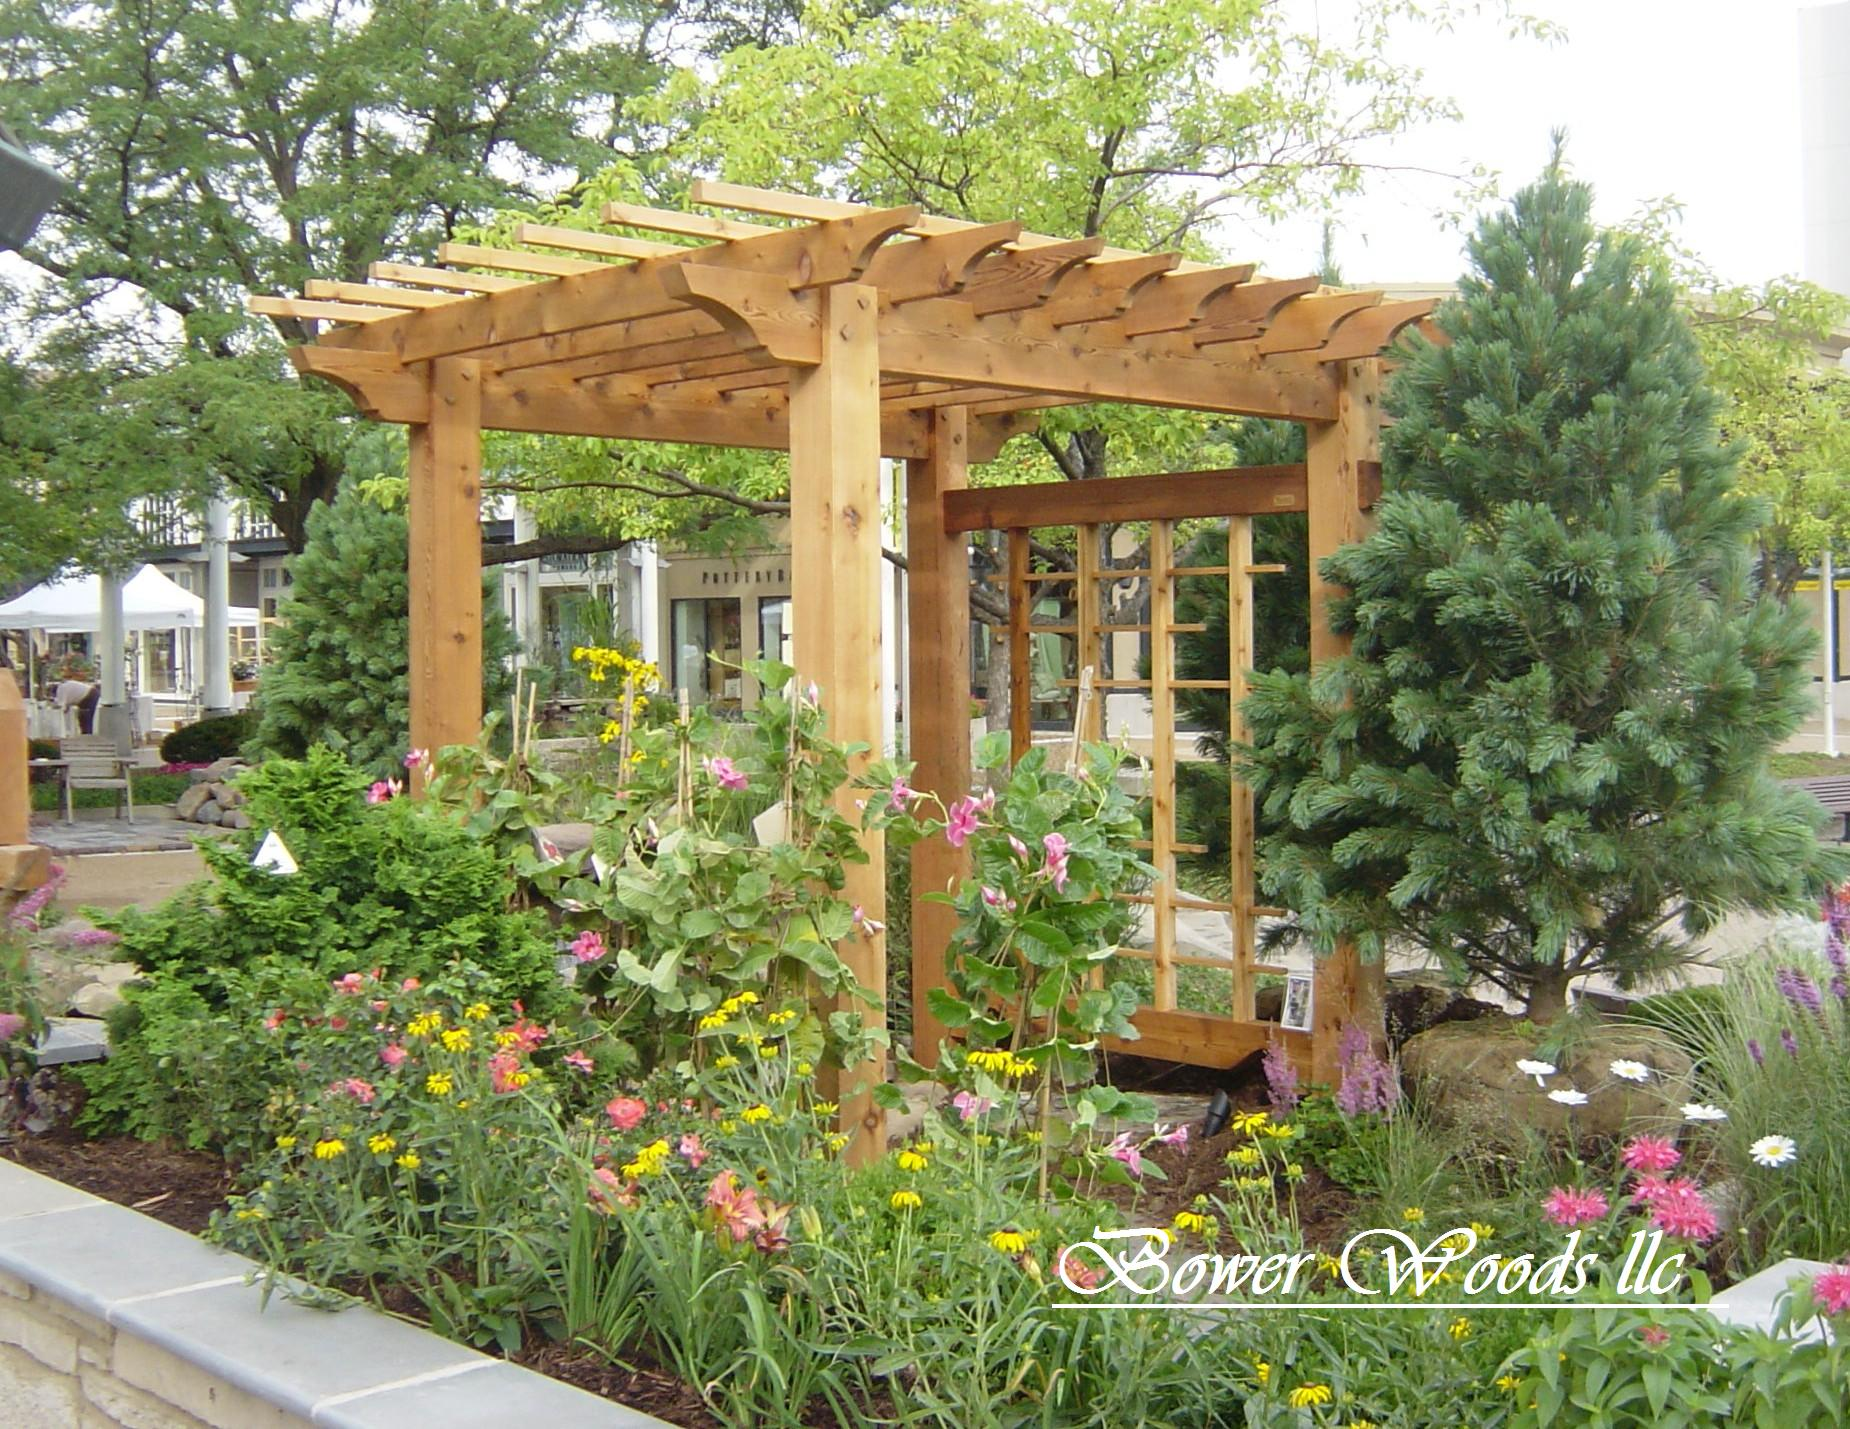 Trellis over garage door - 73 Best Ideas About Arbor Pergola On Pinterest Gardens Backyards And White Pergola